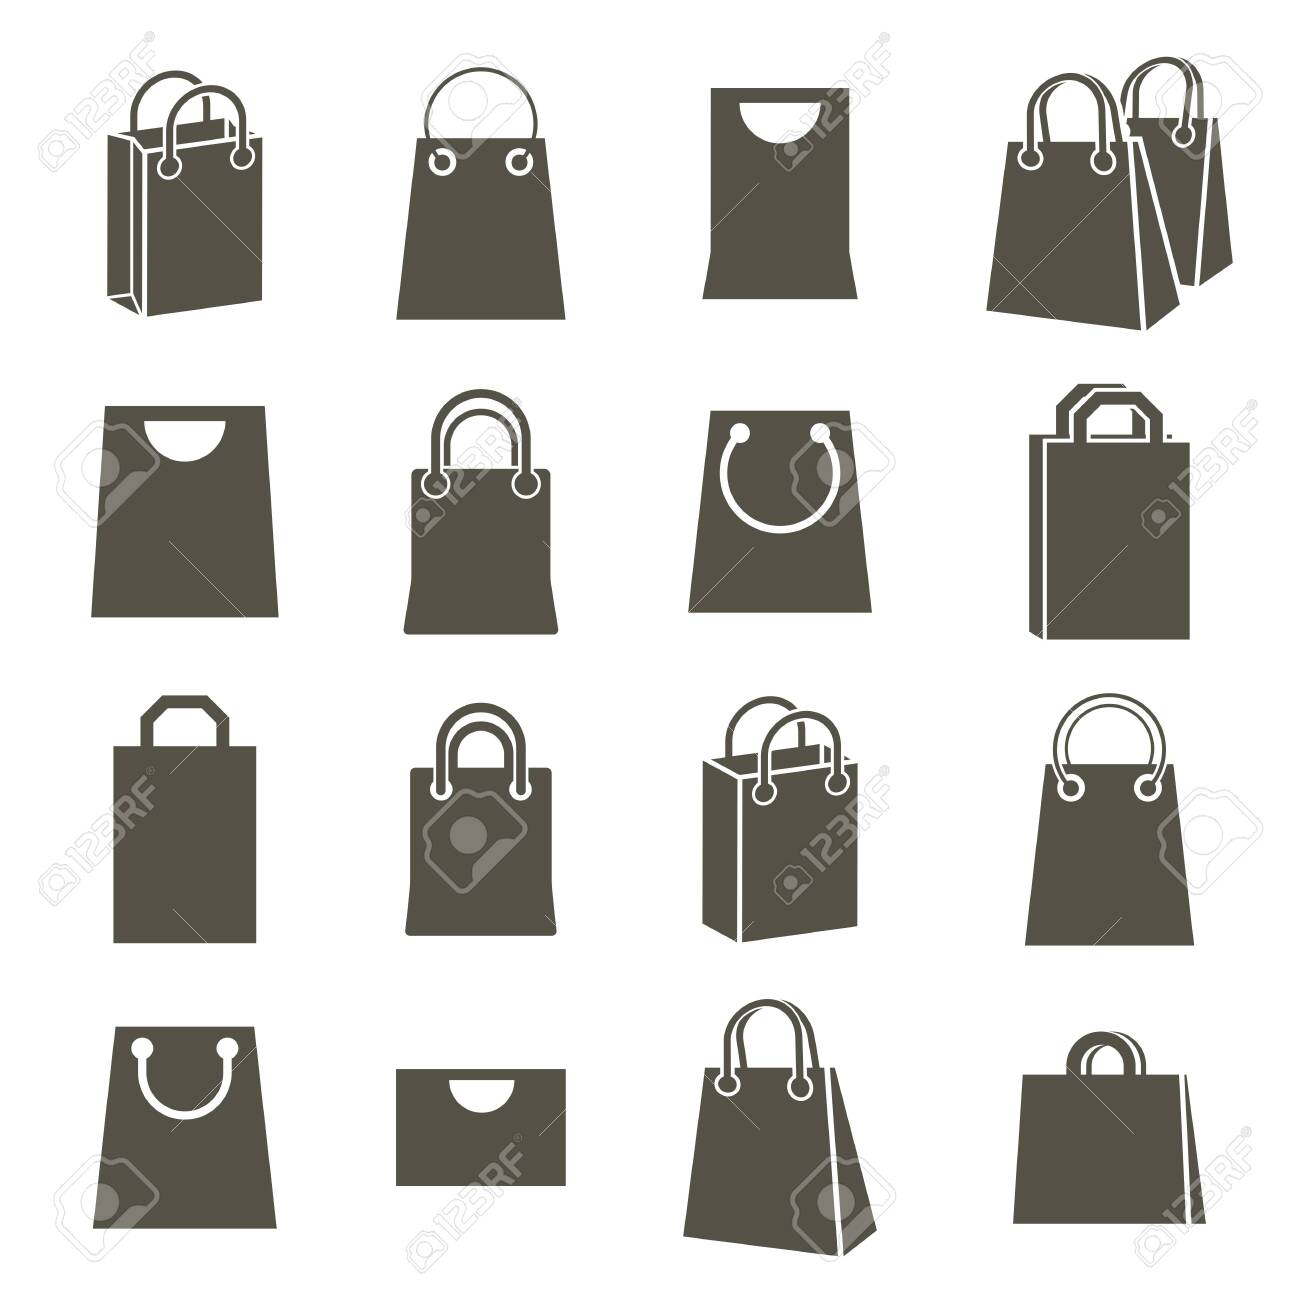 Shopping back icons isolated on white background vector set, shopping theme simplistic symbols vector collections. Stock Vector - 29718008